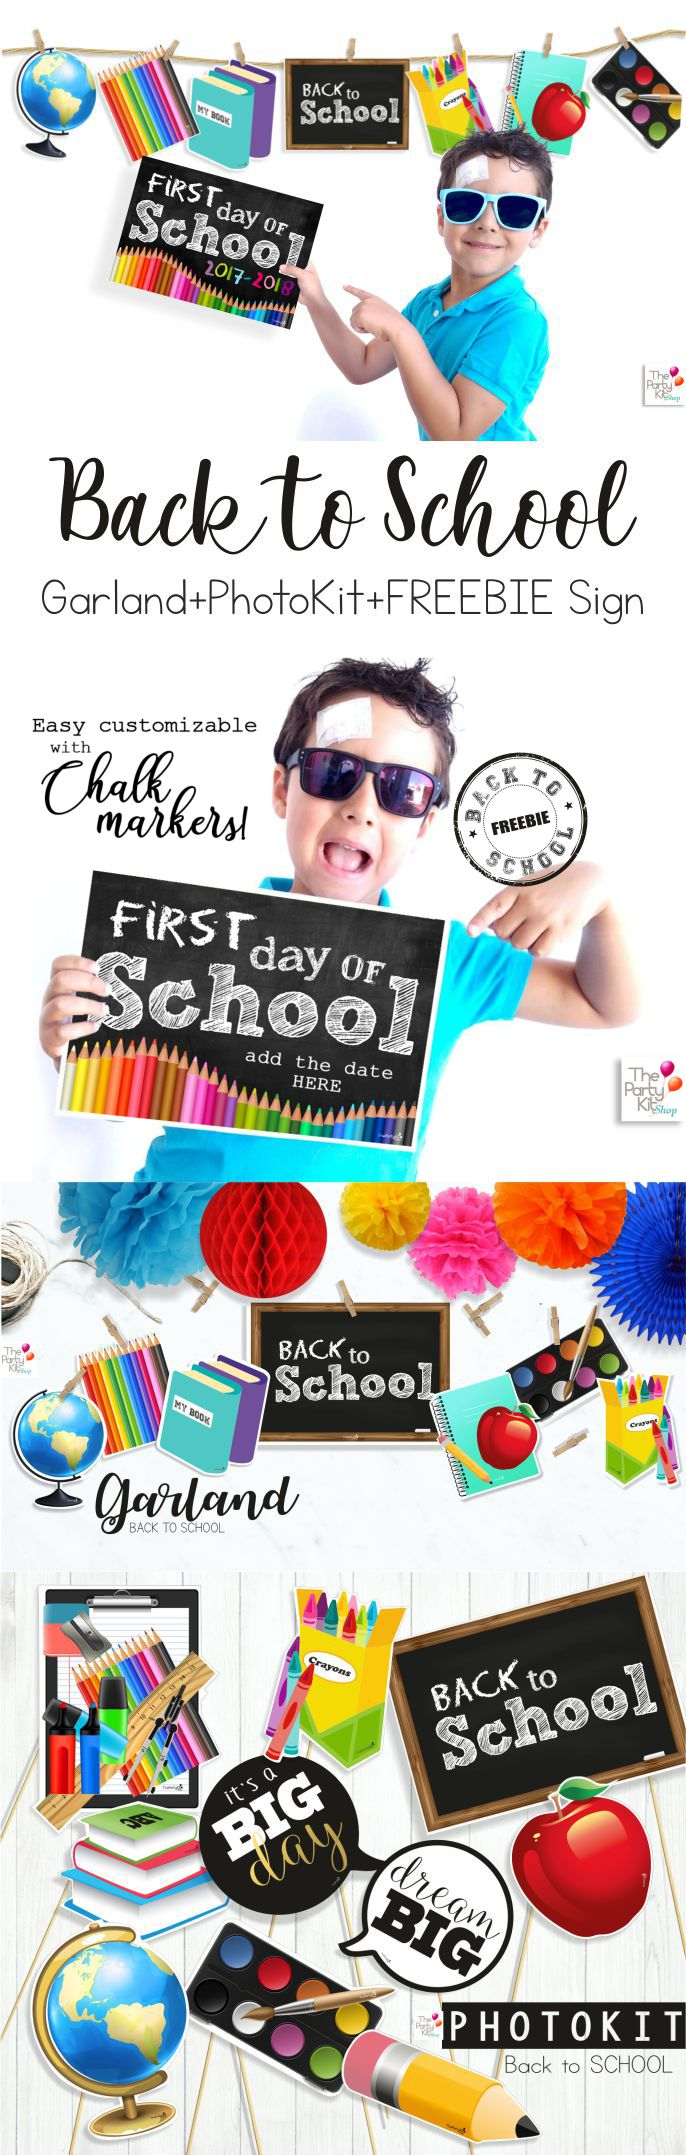 Back to School Garland+PhotoKit+FREEBIE Sign